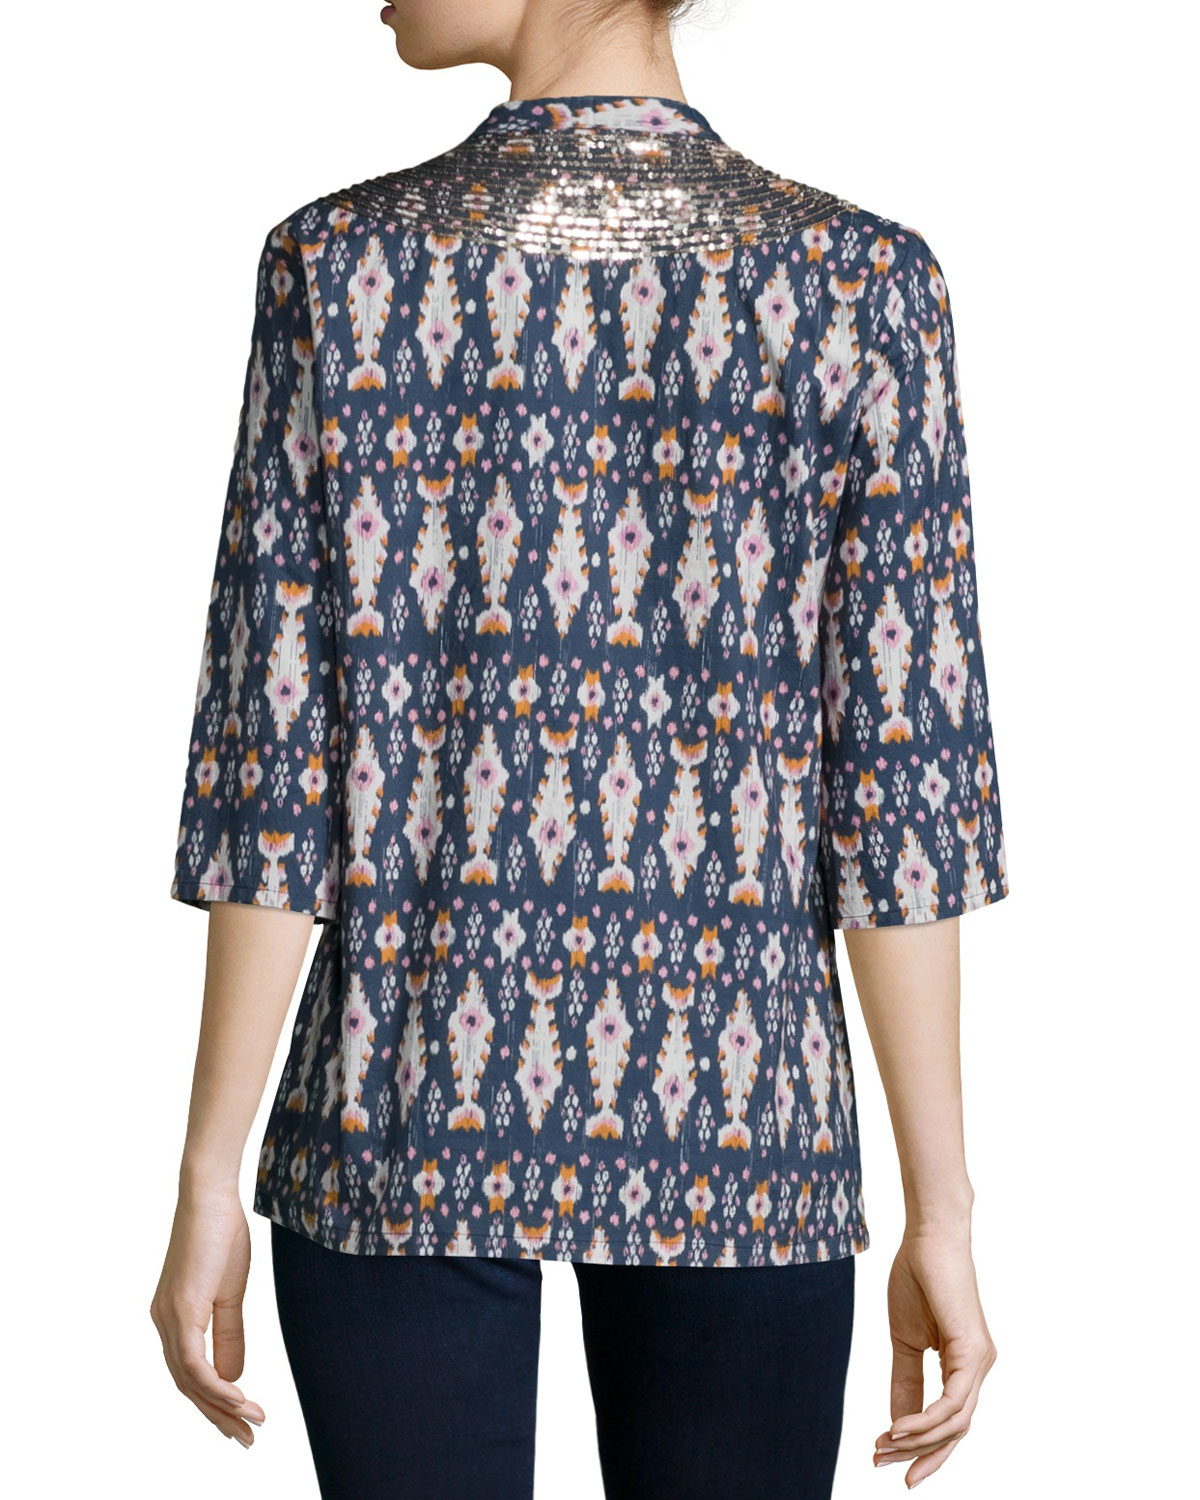 Isadora ikat-print cotton-blend blouse Figue Best Deals Sale Order Many Kinds Of  Low Shipping Cheap Online PuBJHn6sS3